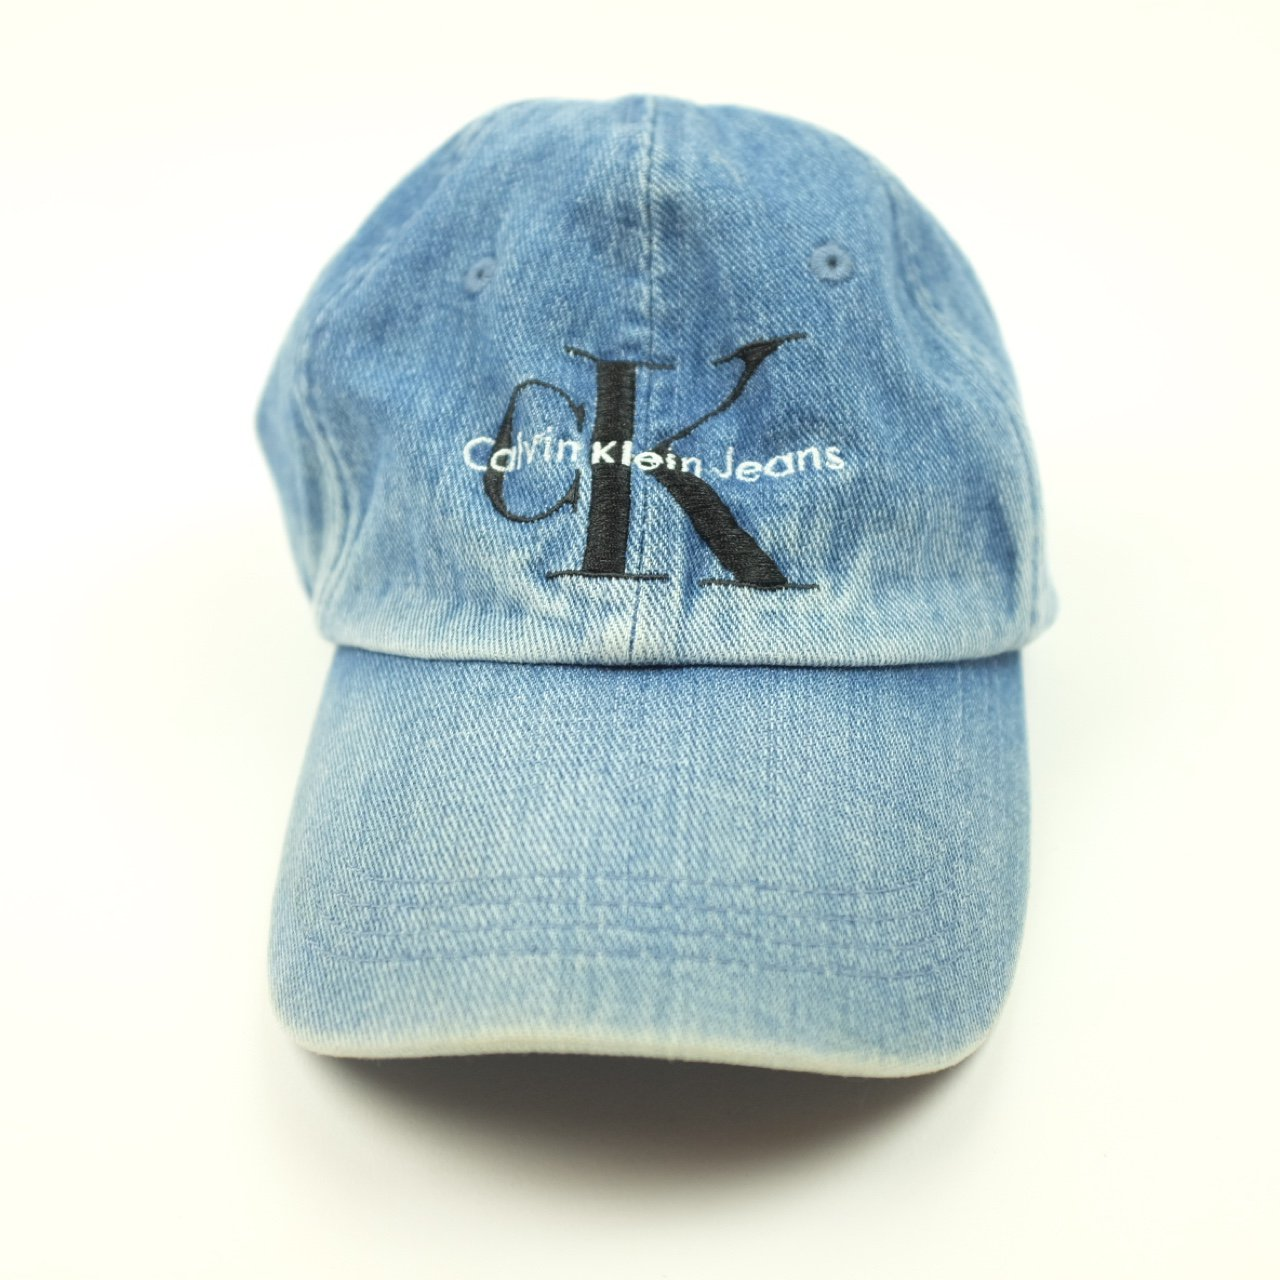 Calvin Klein Denim hat! Perfect condition! Urban Outfitters - Depop a101ae33625